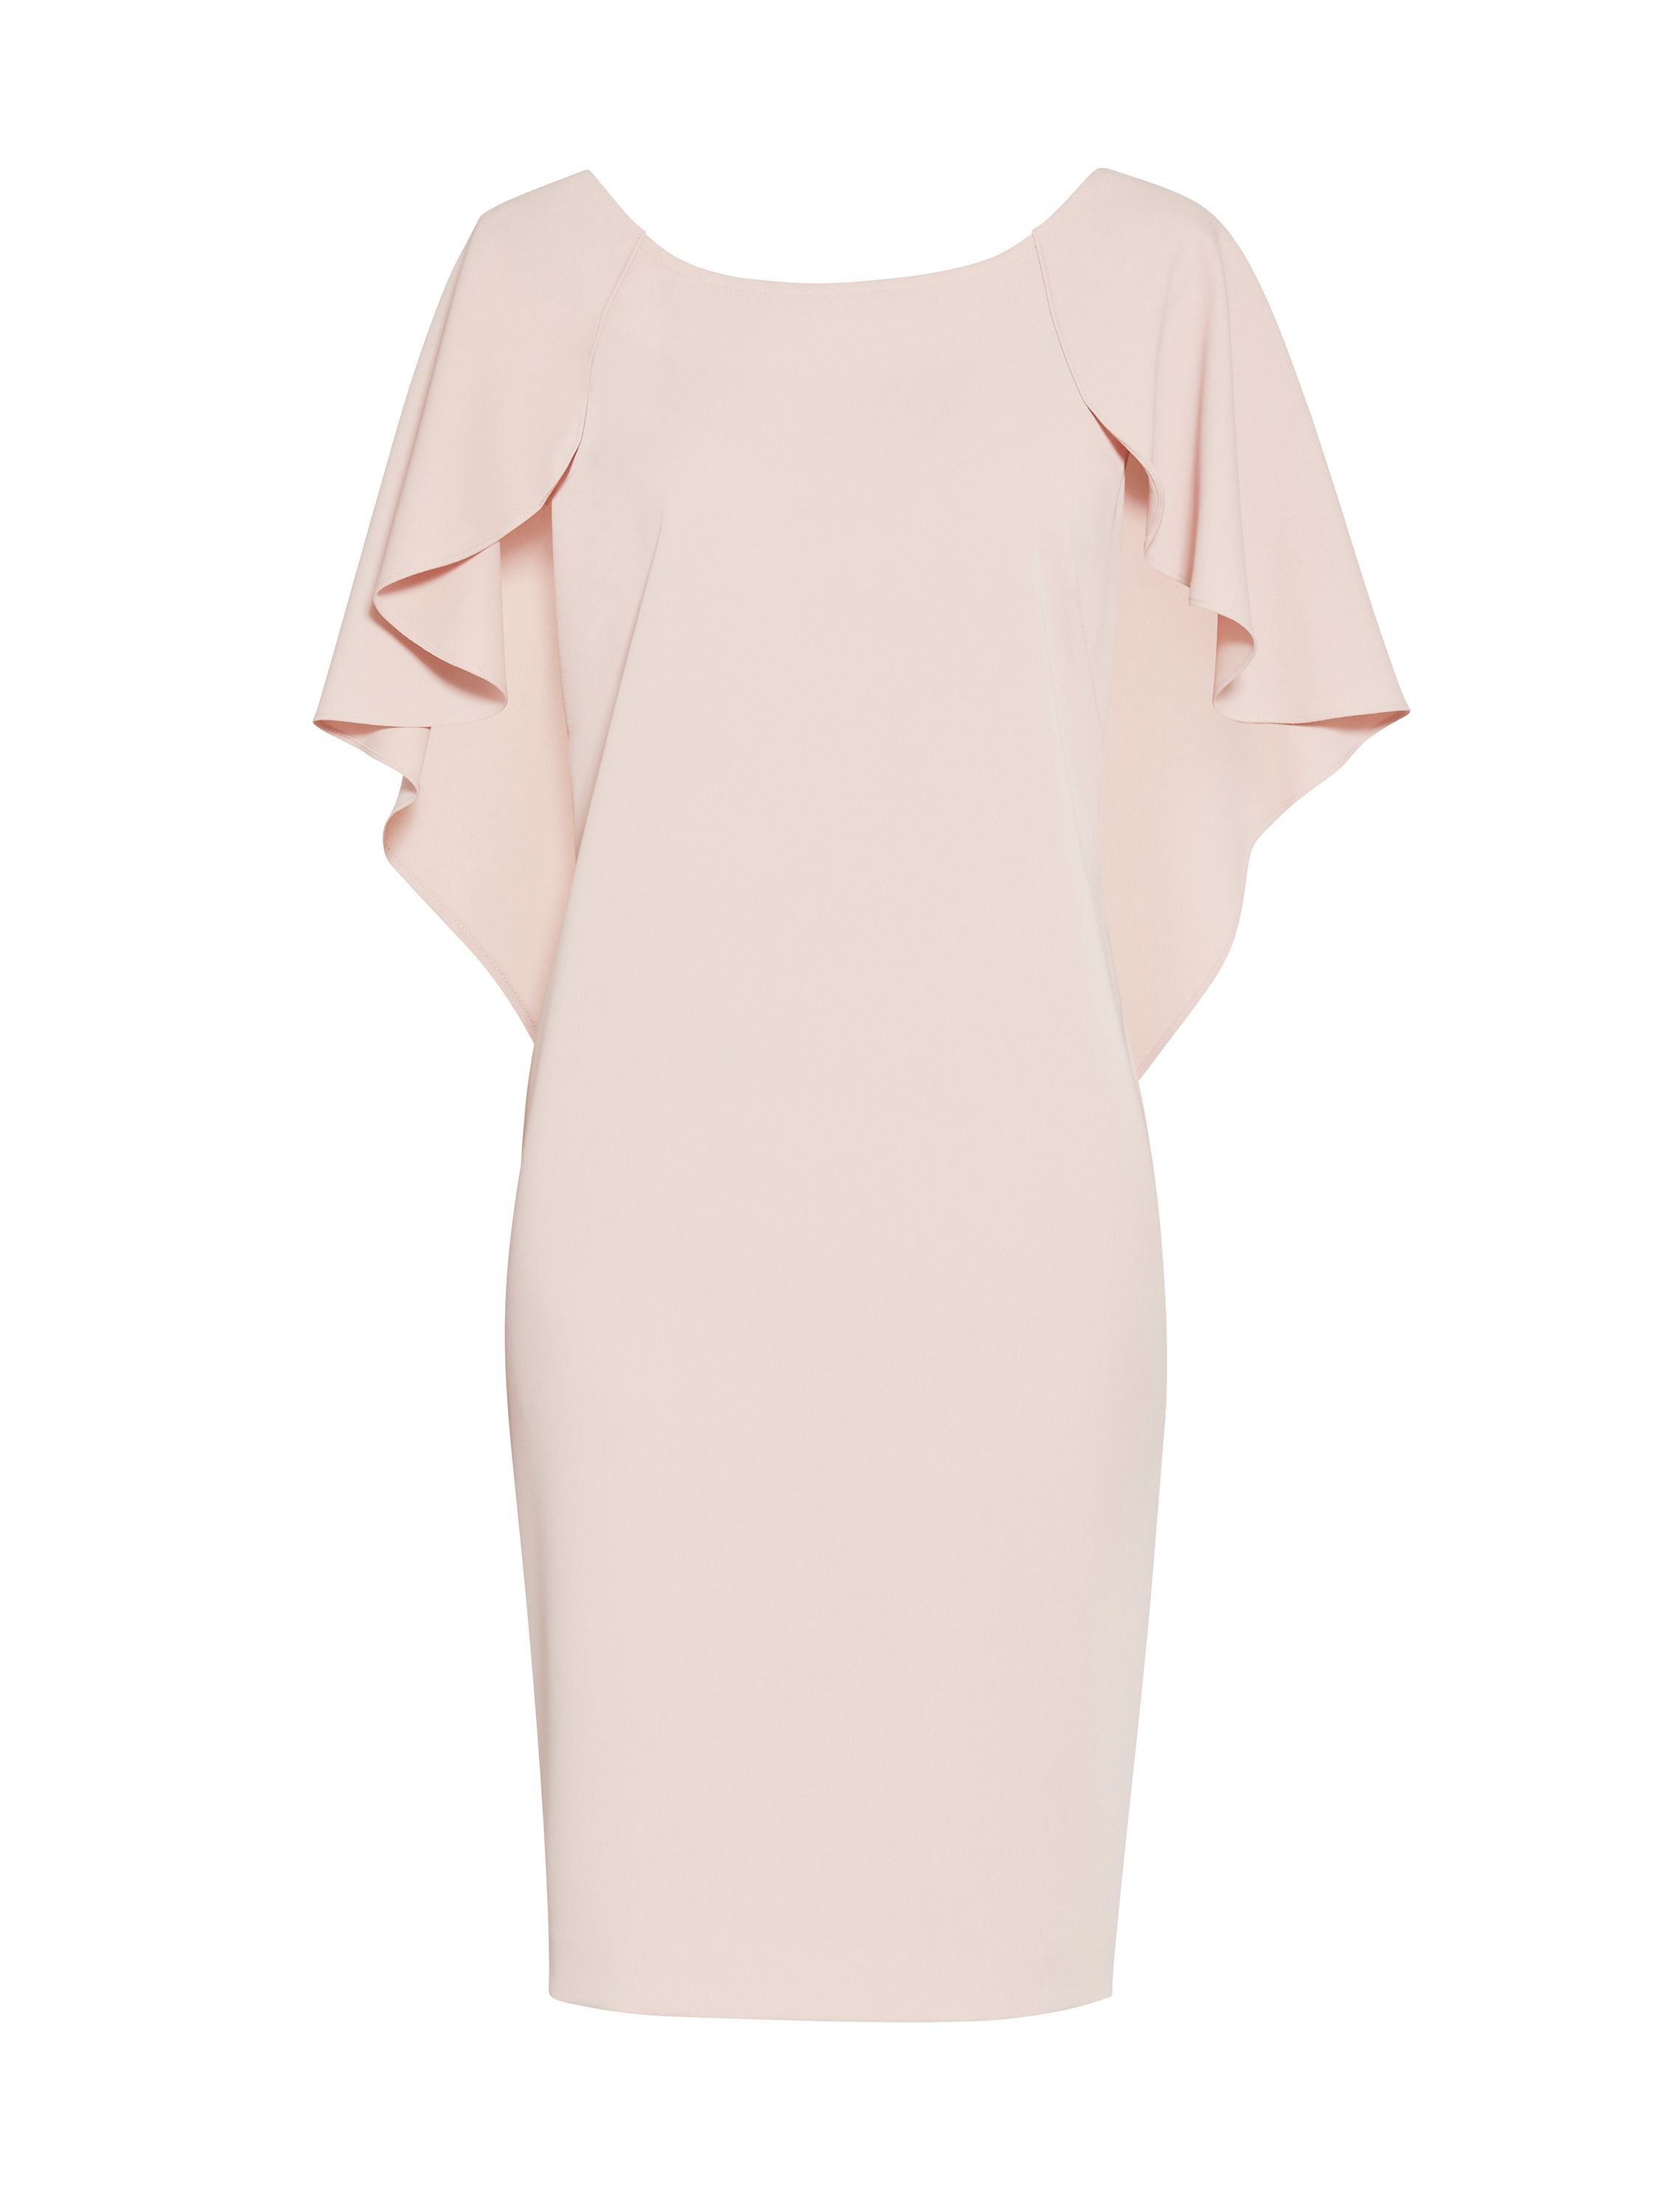 Gina Bacconi Moss crepe dress with cape detail, Pastel Pink